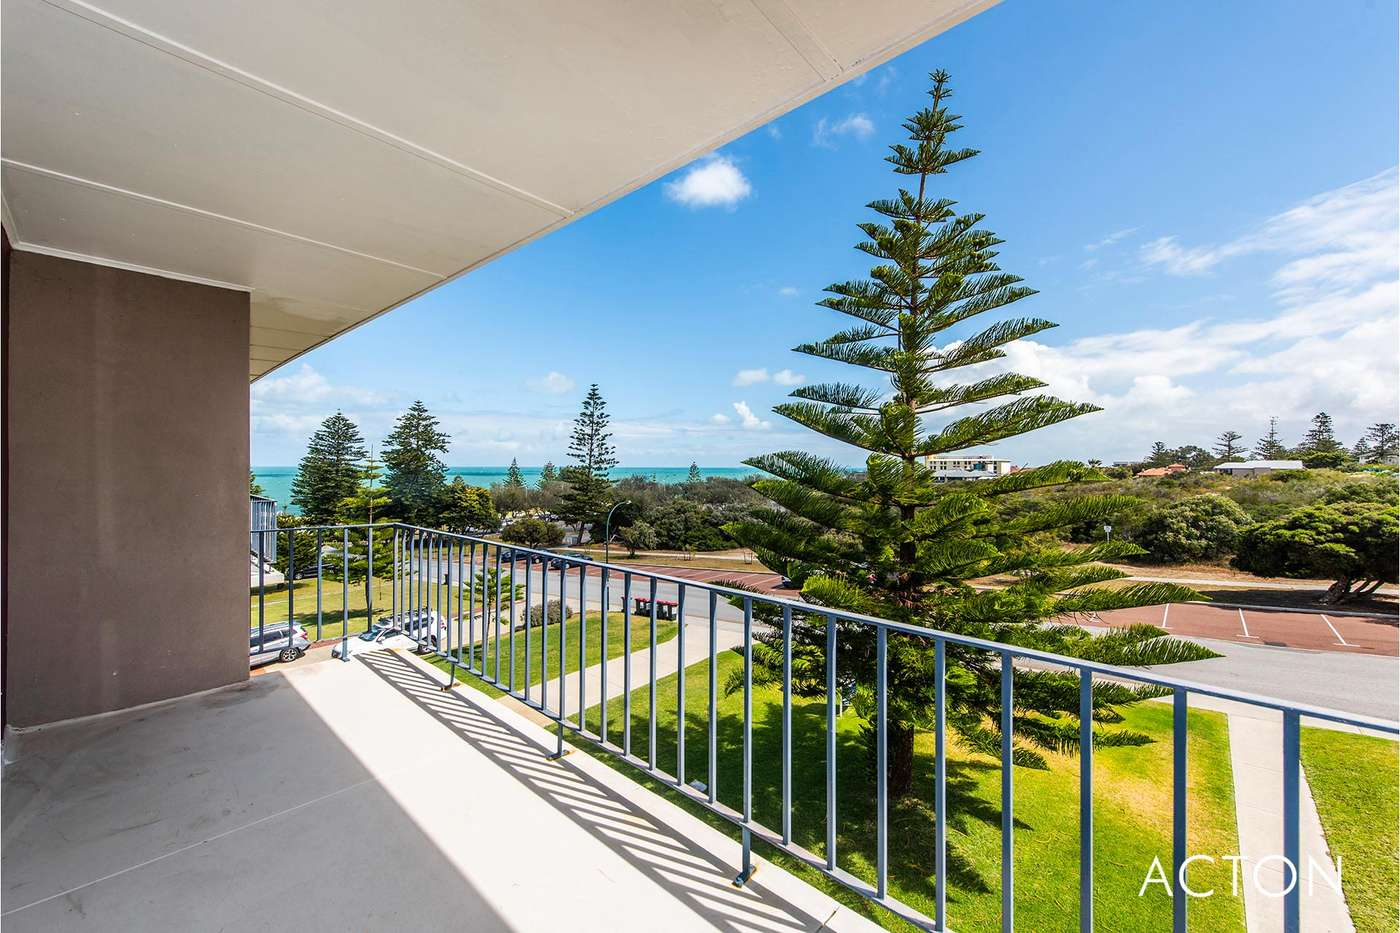 Main view of Homely apartment listing, 7/7 Napier Street, Cottesloe, WA 6011